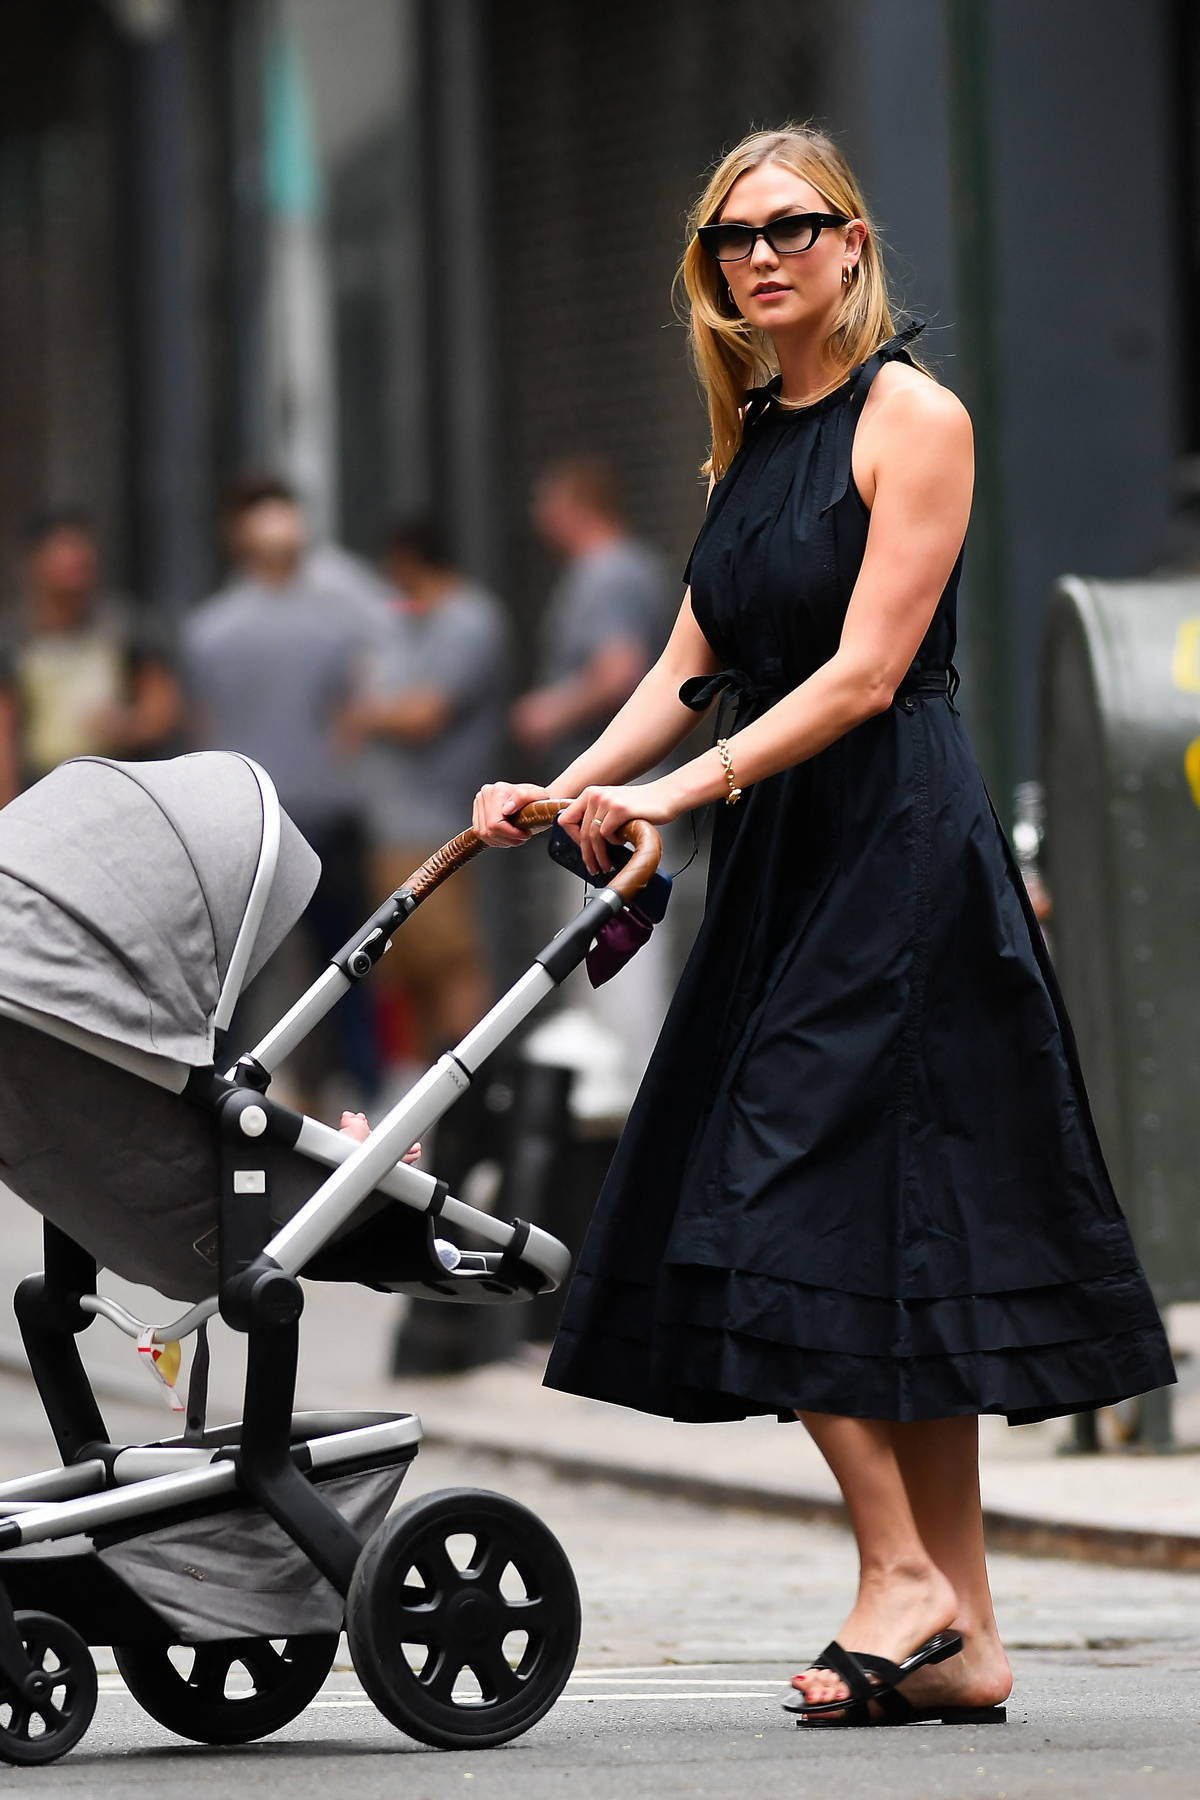 Karlie Kloss looks great in a black dress as she steps out for stroll with her baby in New York City